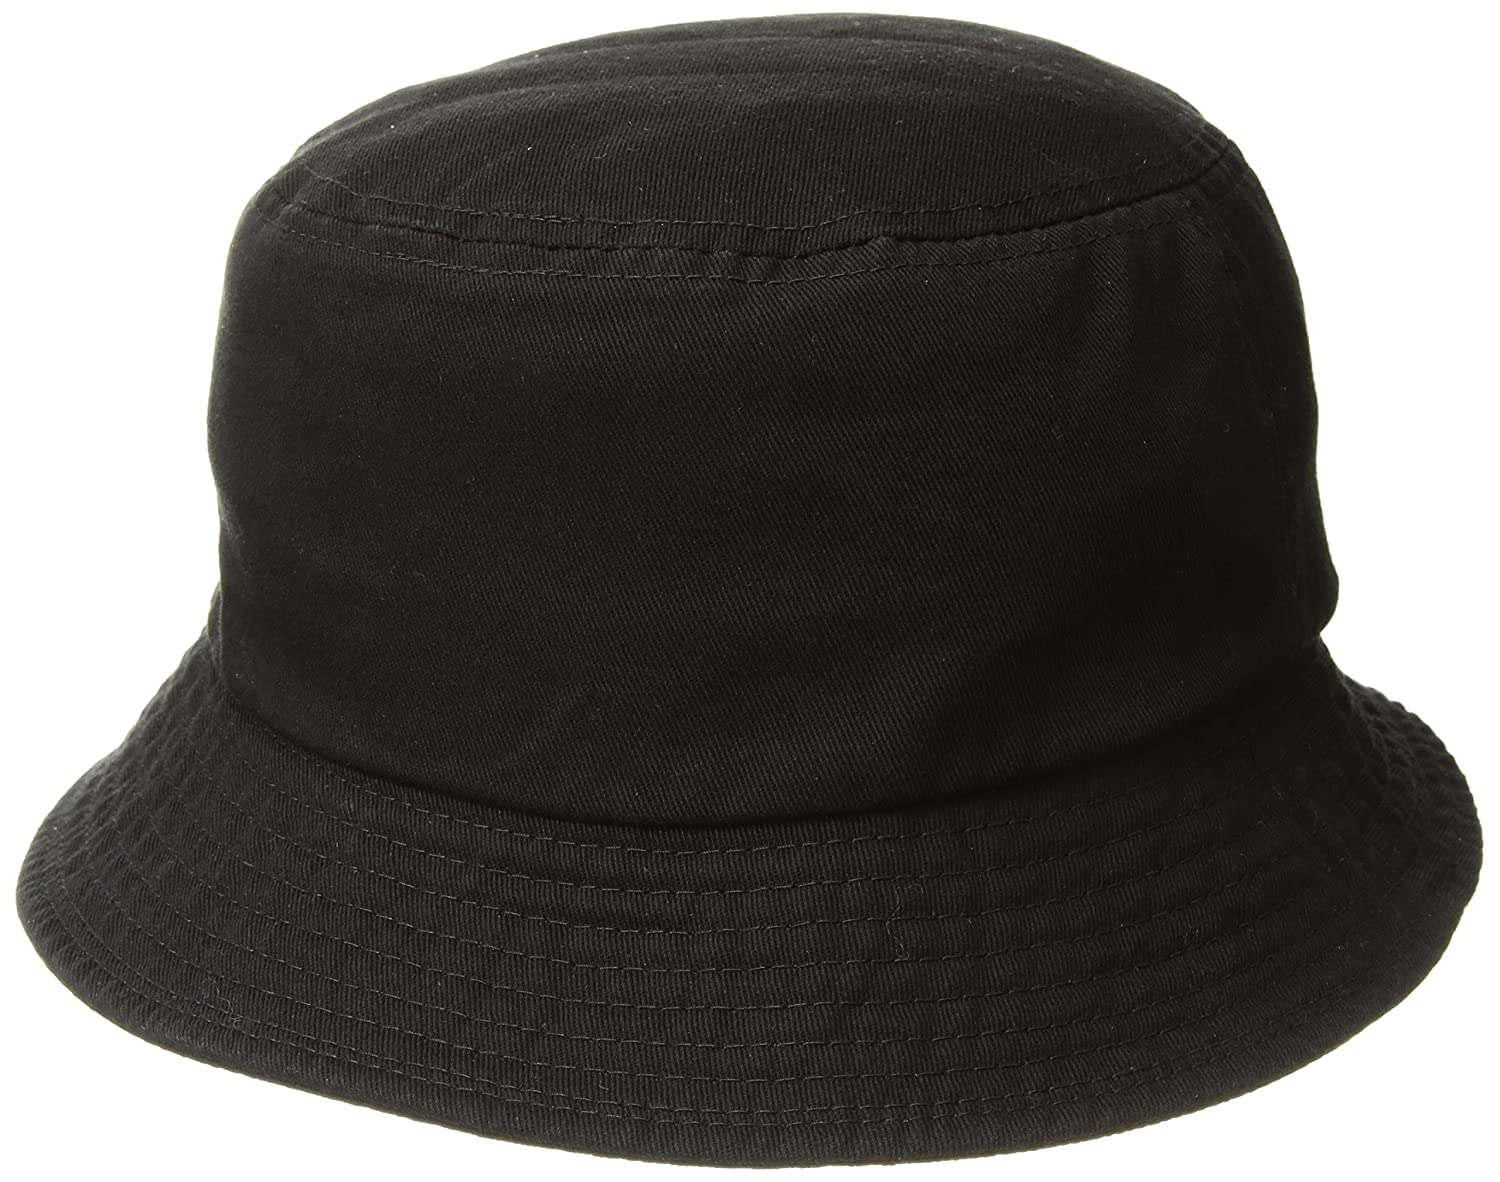 5161c8540 Kangol Washed Bucket Hat: Amazon.co.uk: Clothing